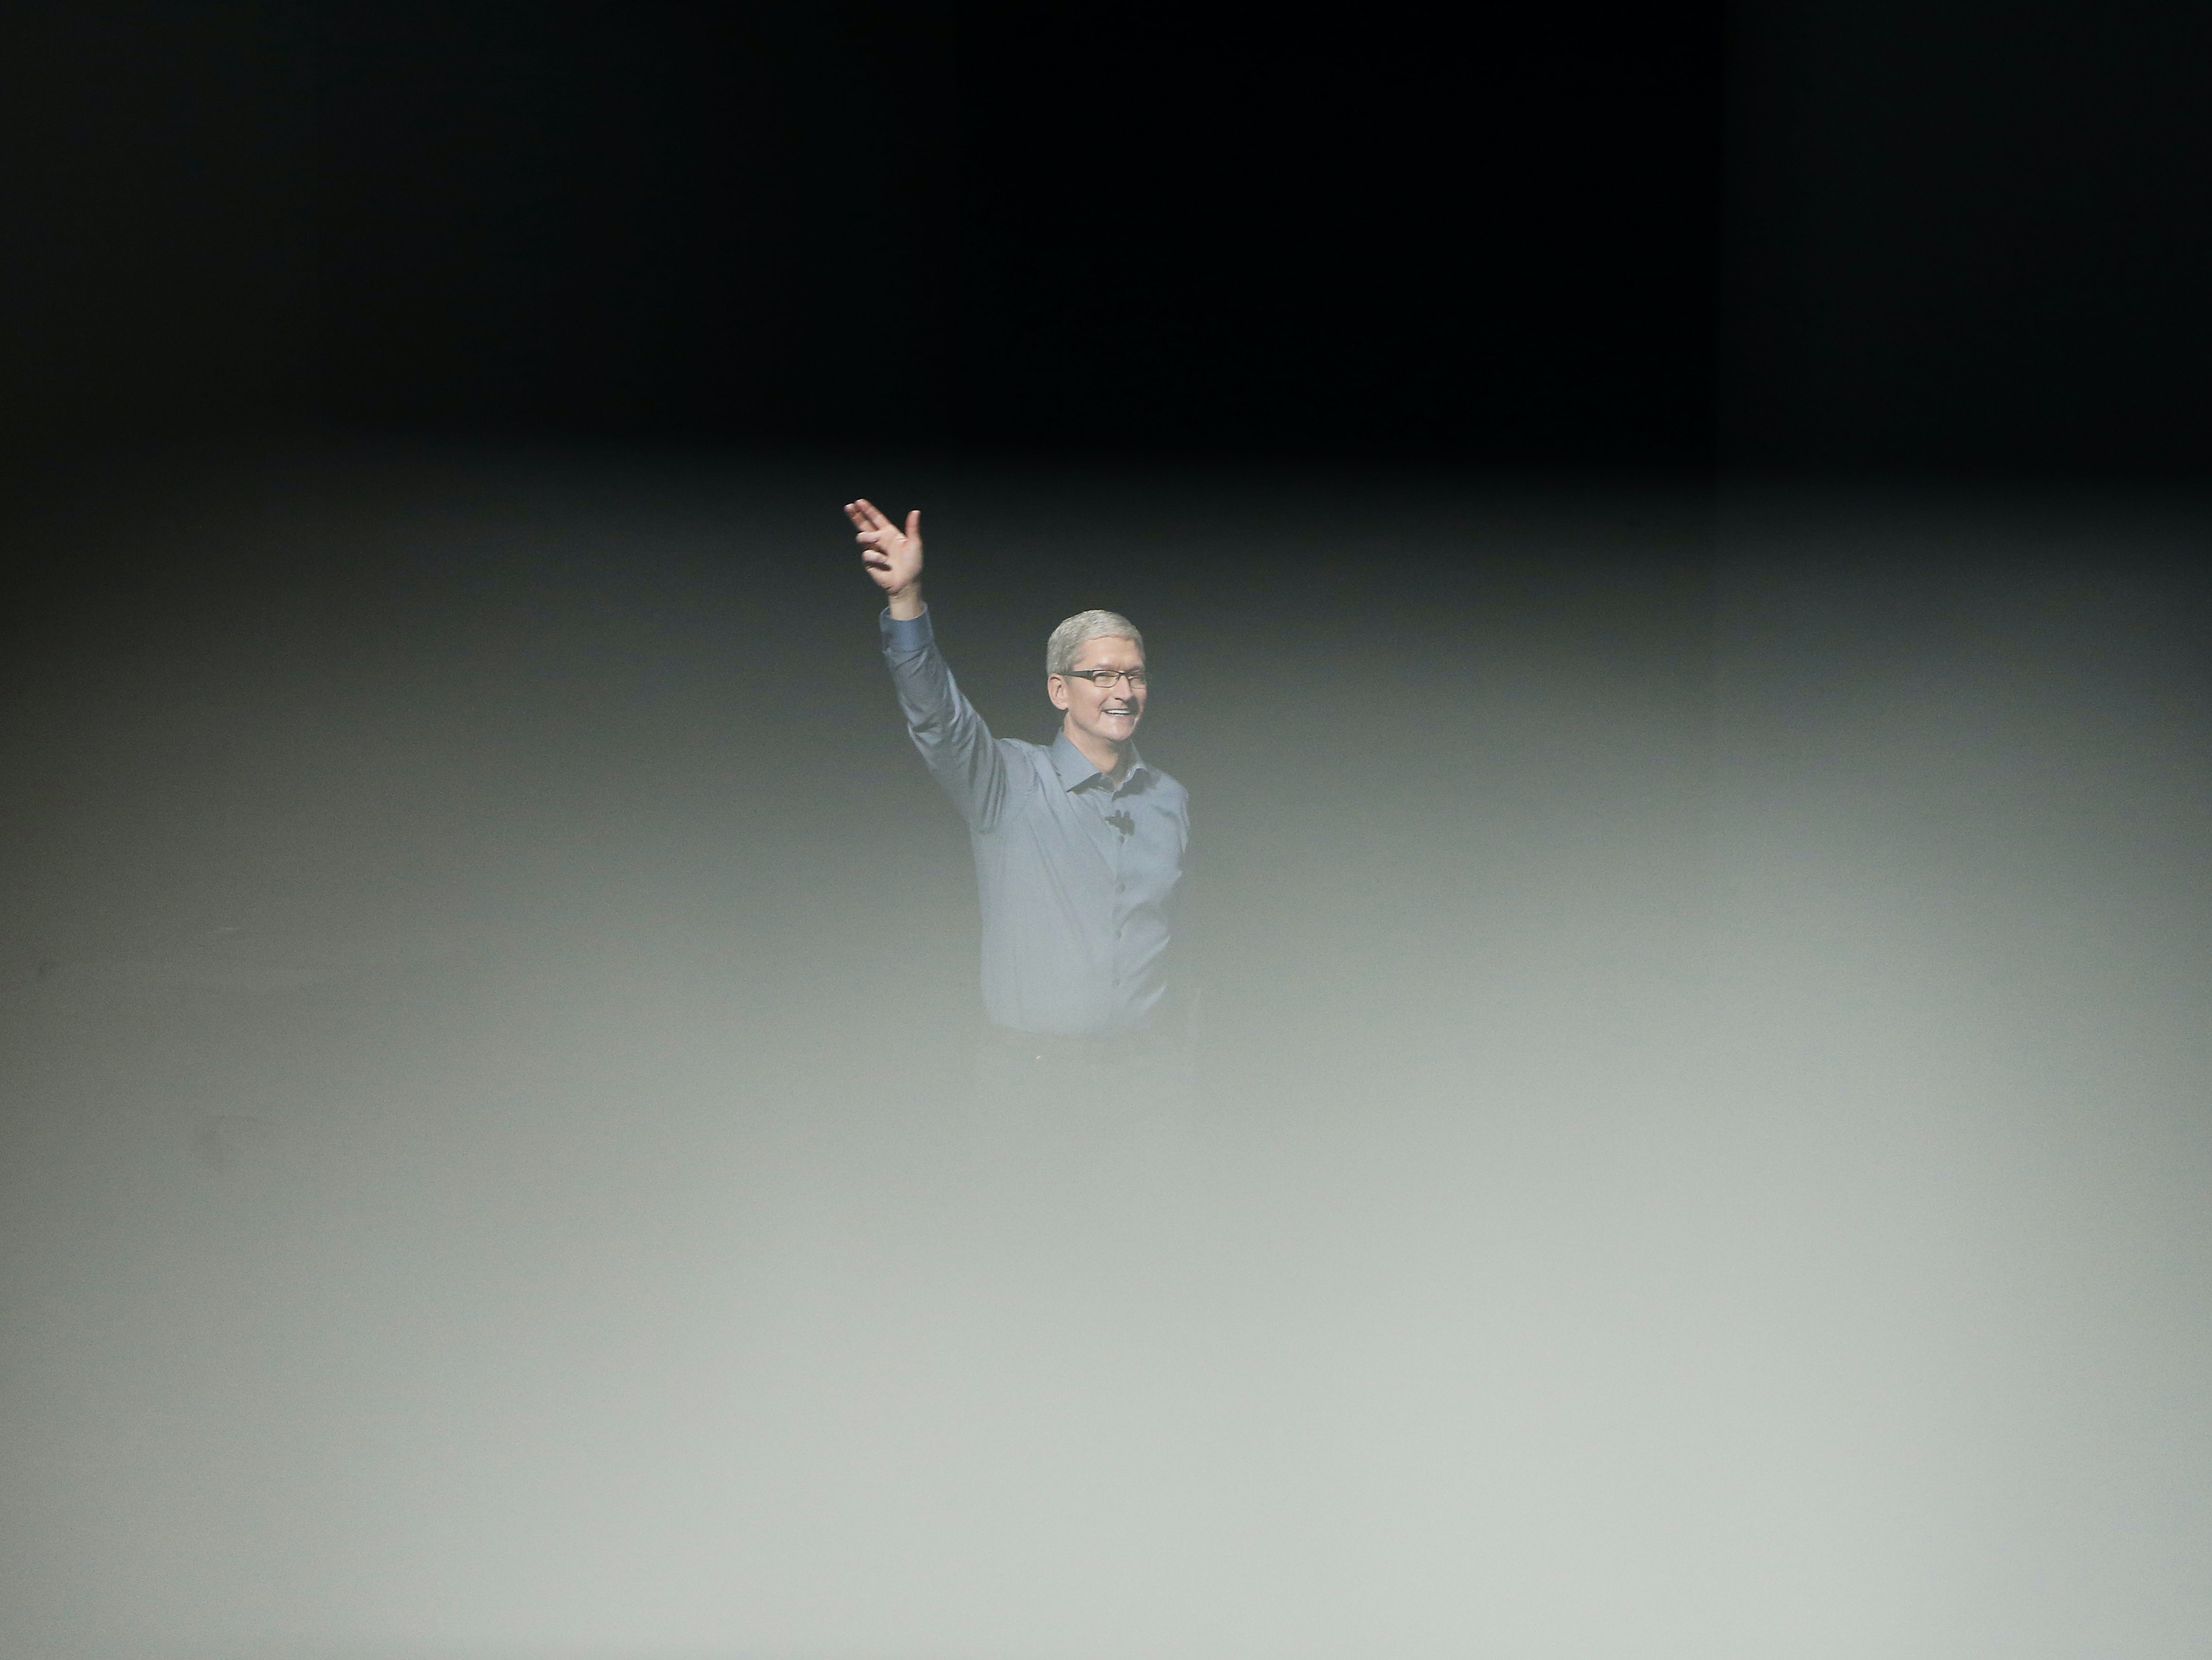 Apple CEO Tim Cook: This Fall, Siri Gets Wise